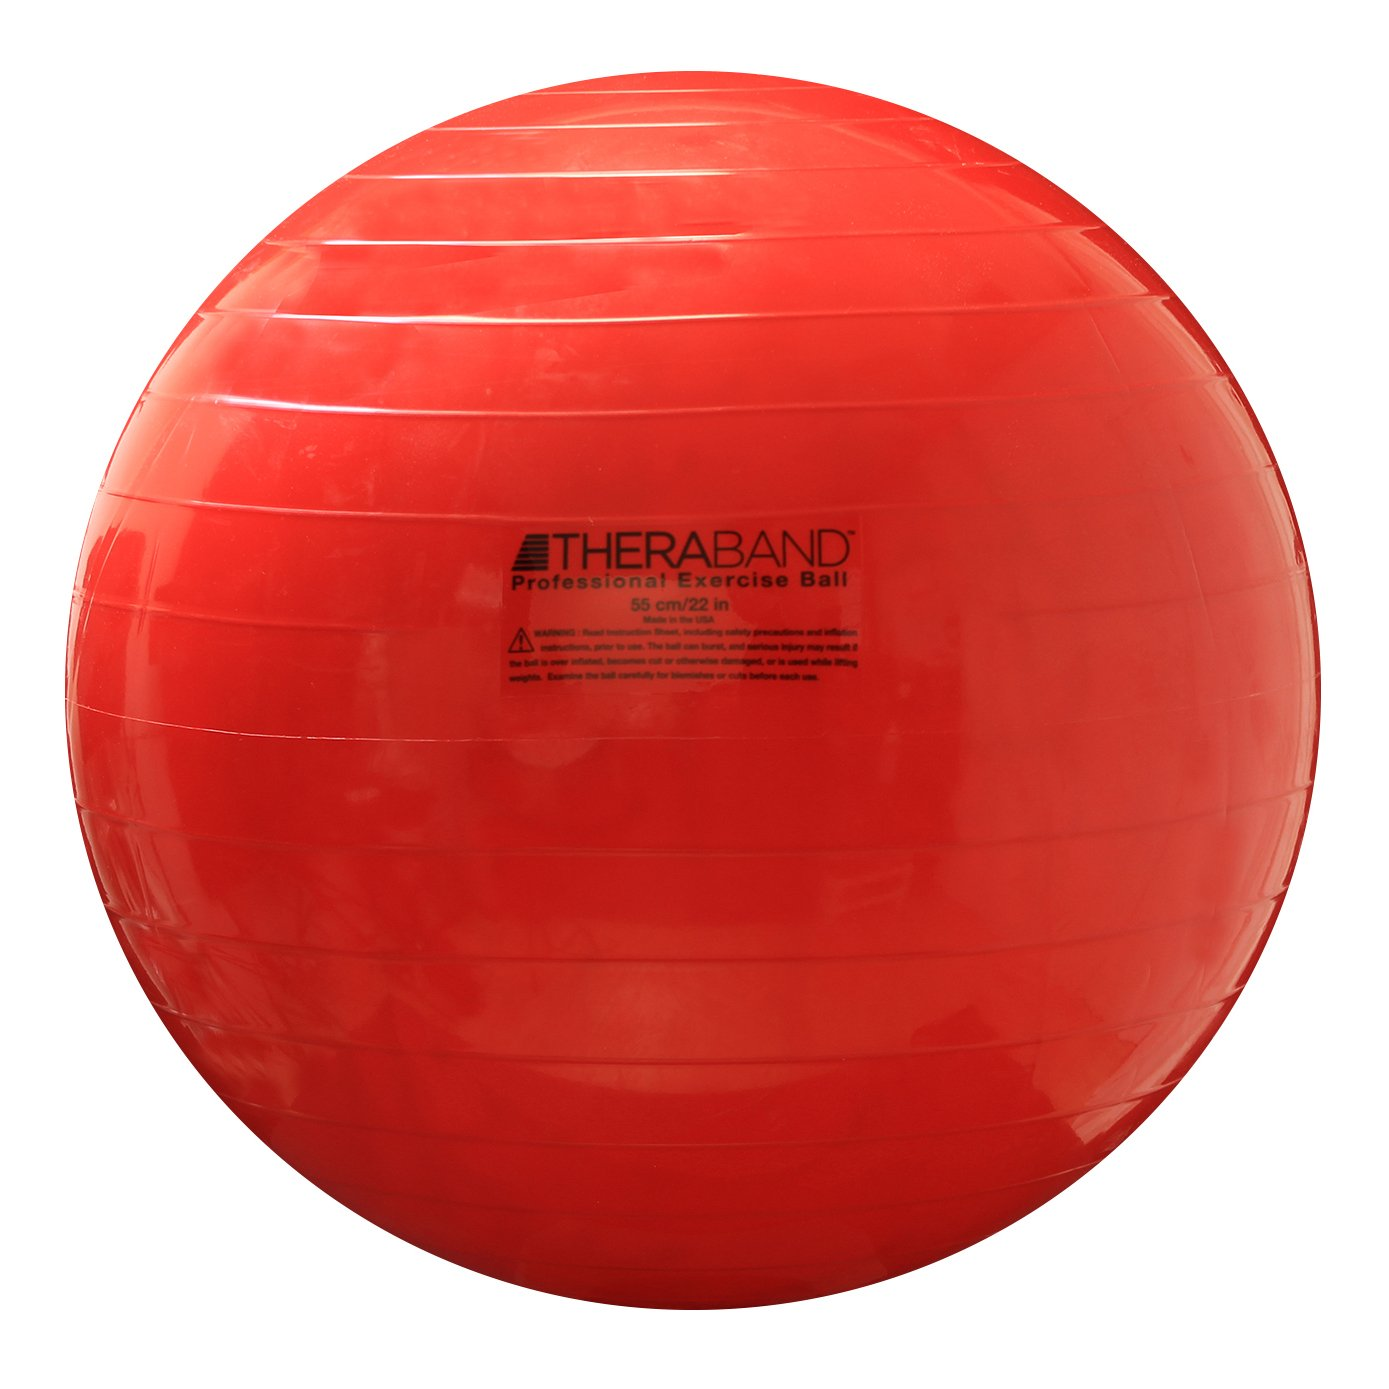 TheraBand Exercise Ball, Stability Ball with 55 cm Diameter for Athletes 5'1'' to 5'6'' Tall, Standard Fitness Ball for Posture, Balance, Yoga, Pilates, Core, Rehab, Red